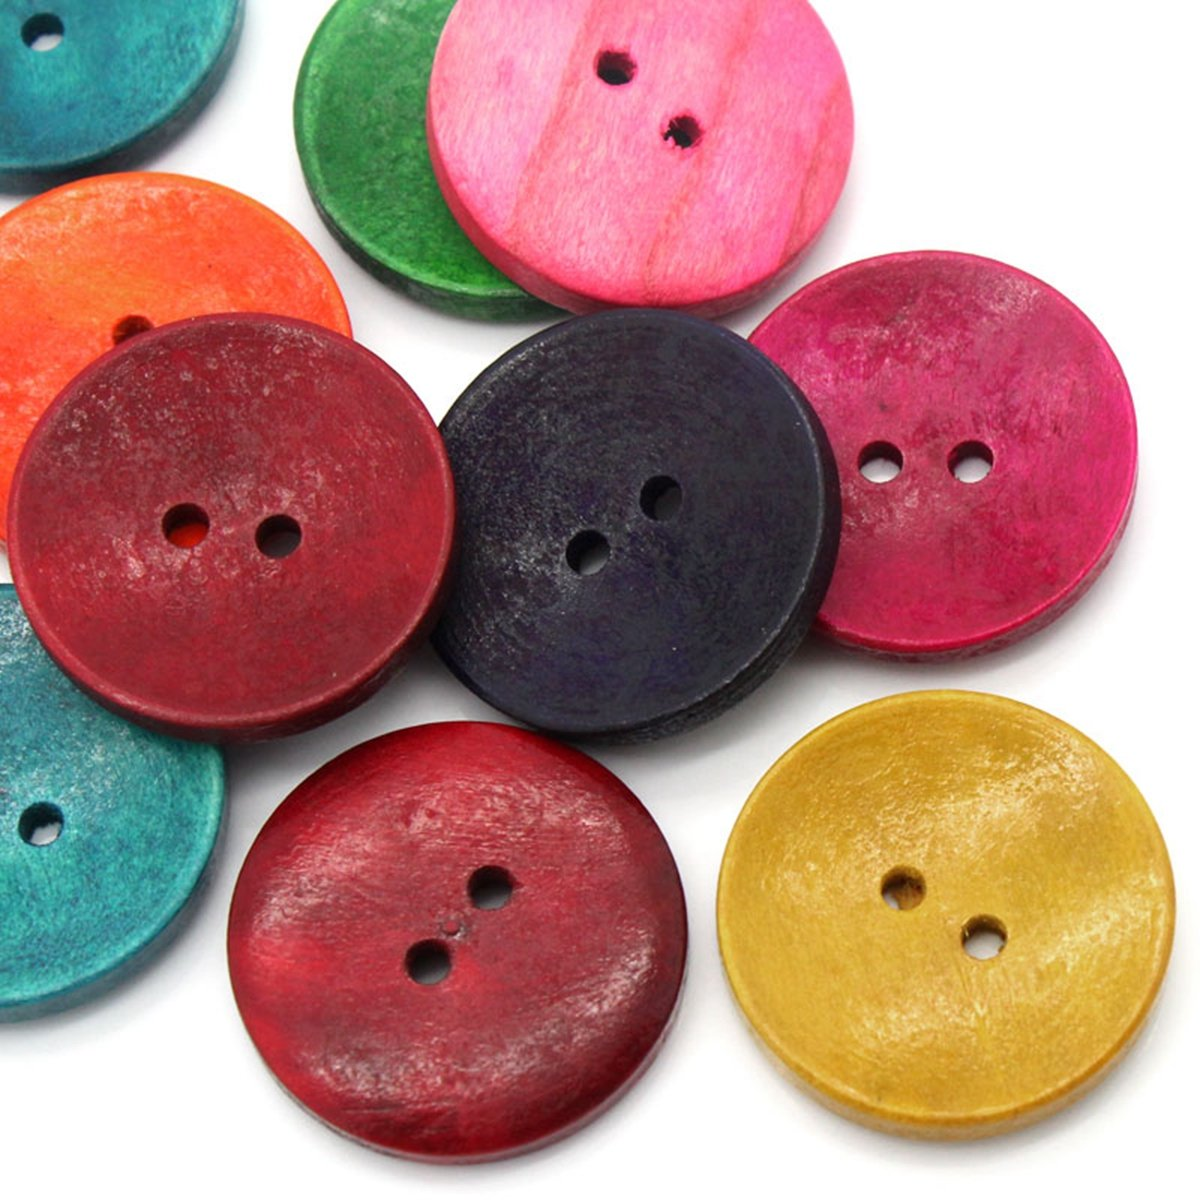 HOUSWEETY 50PCs Wood Sewing Buttons Scrapbooking 2 Holes Round Mixed 3cm(1 1/8) Dia. HOUSWEETYB23789